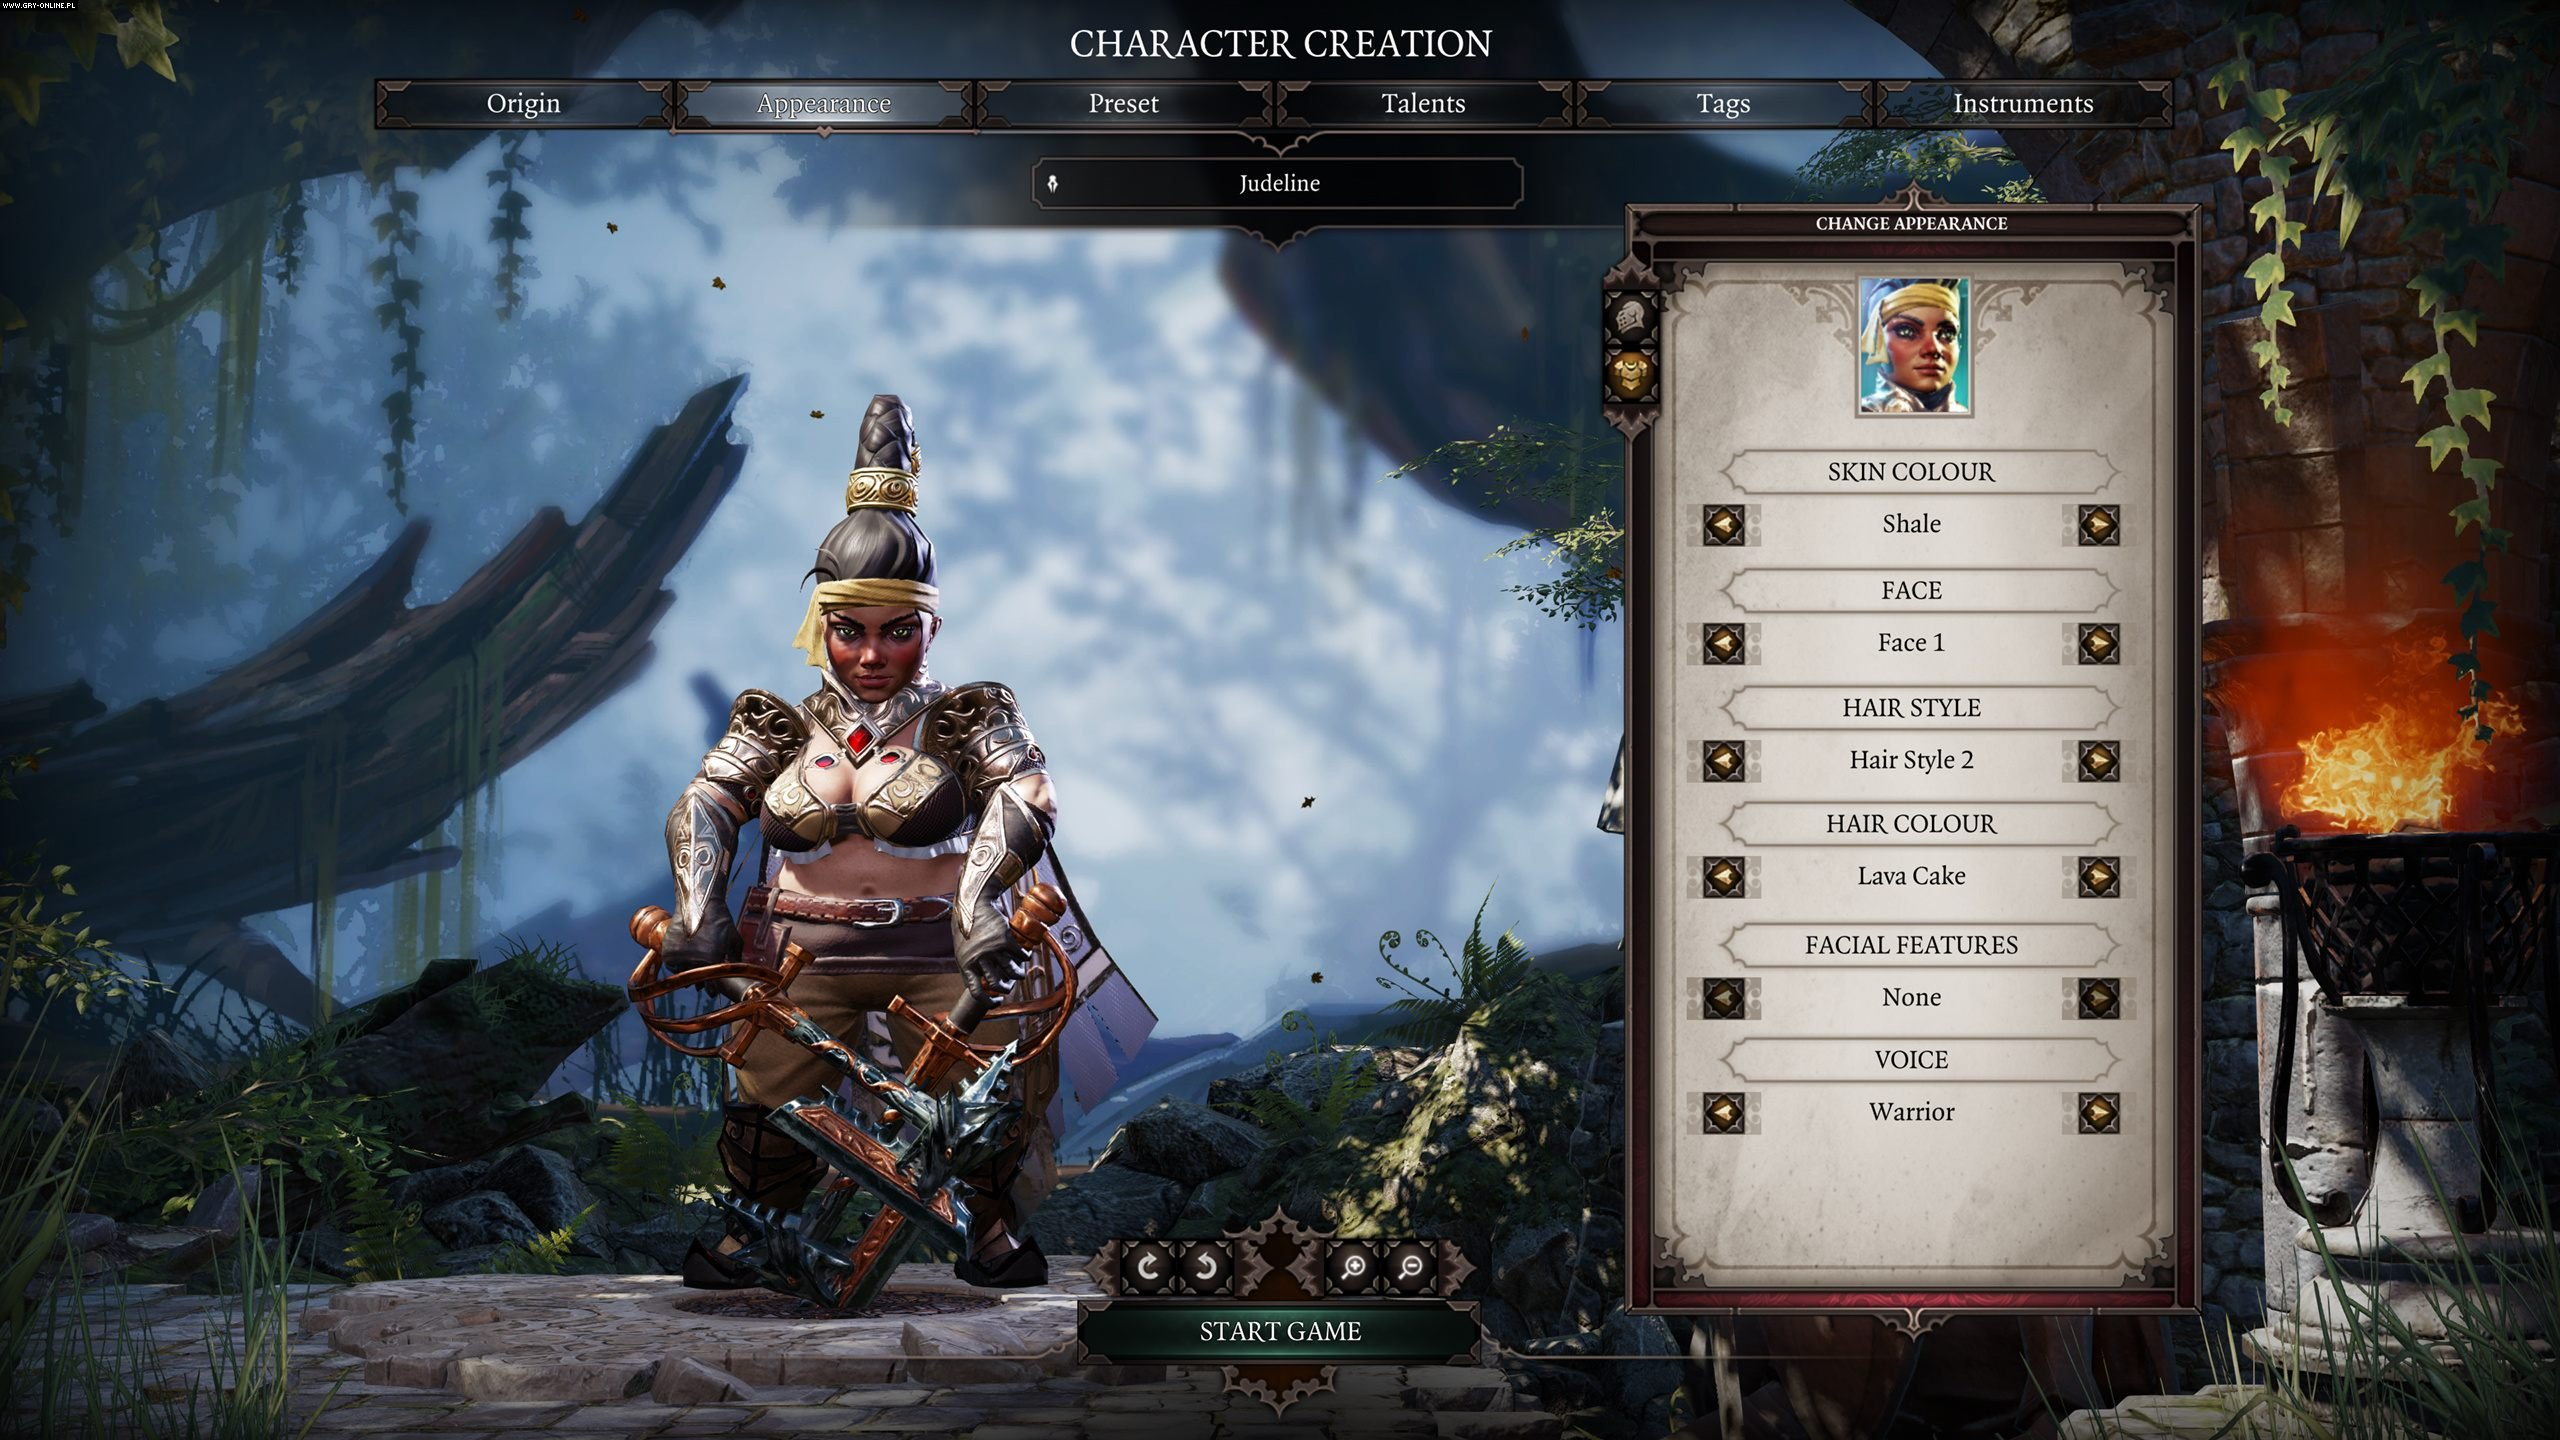 Divinity: Original Sin II - Definitive Edition PC Games Image 102/304, Larian Studios